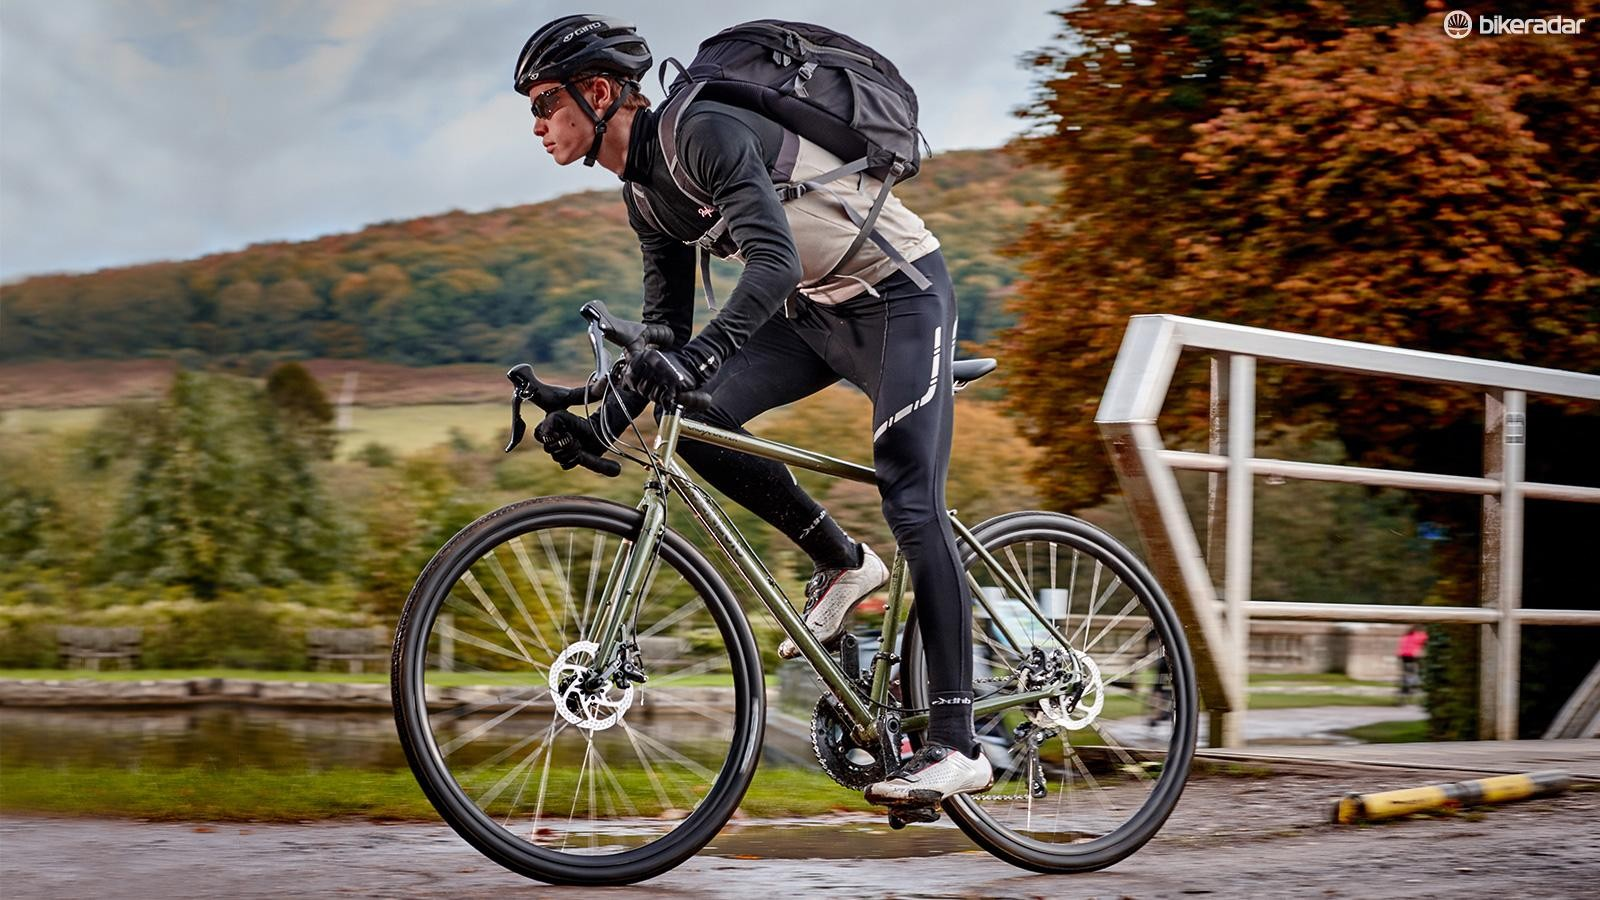 The Croix de Fer is a bike for notching up the miles — slowly, comfortably, enjoyably